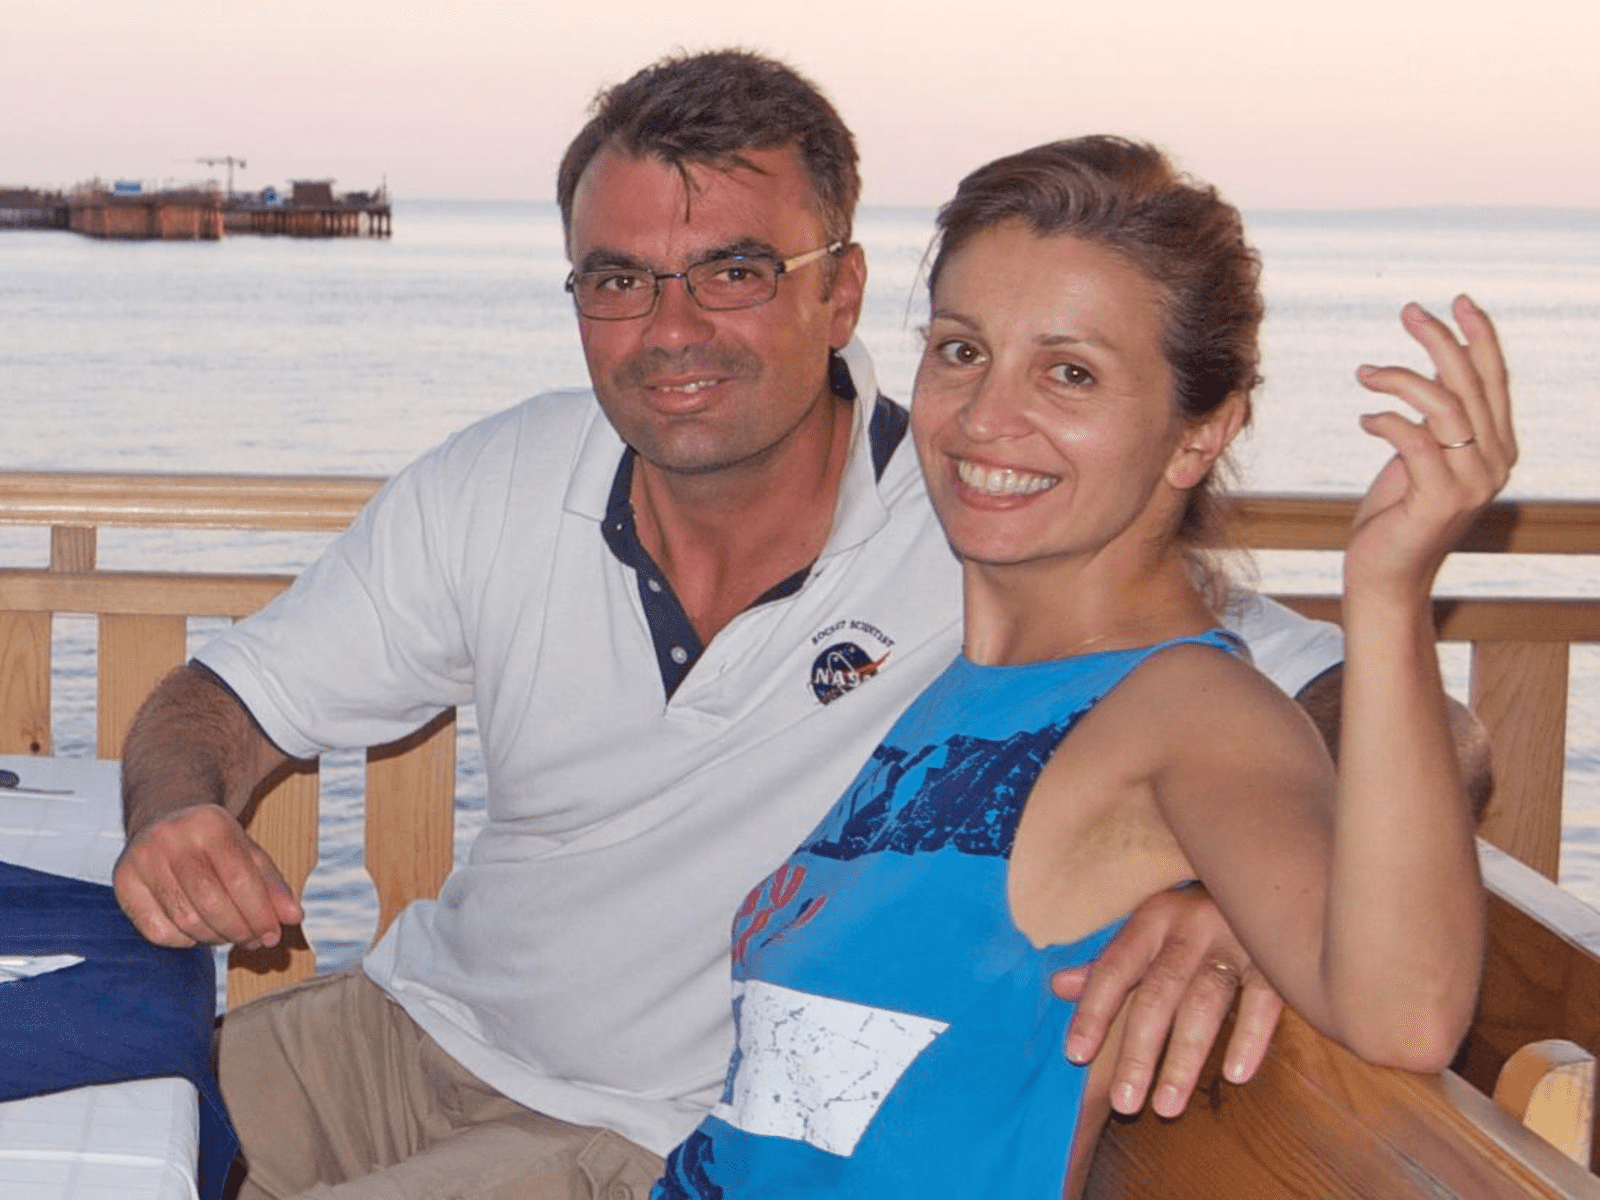 Ingrid & Florin from Issy-les-Moulineaux, France